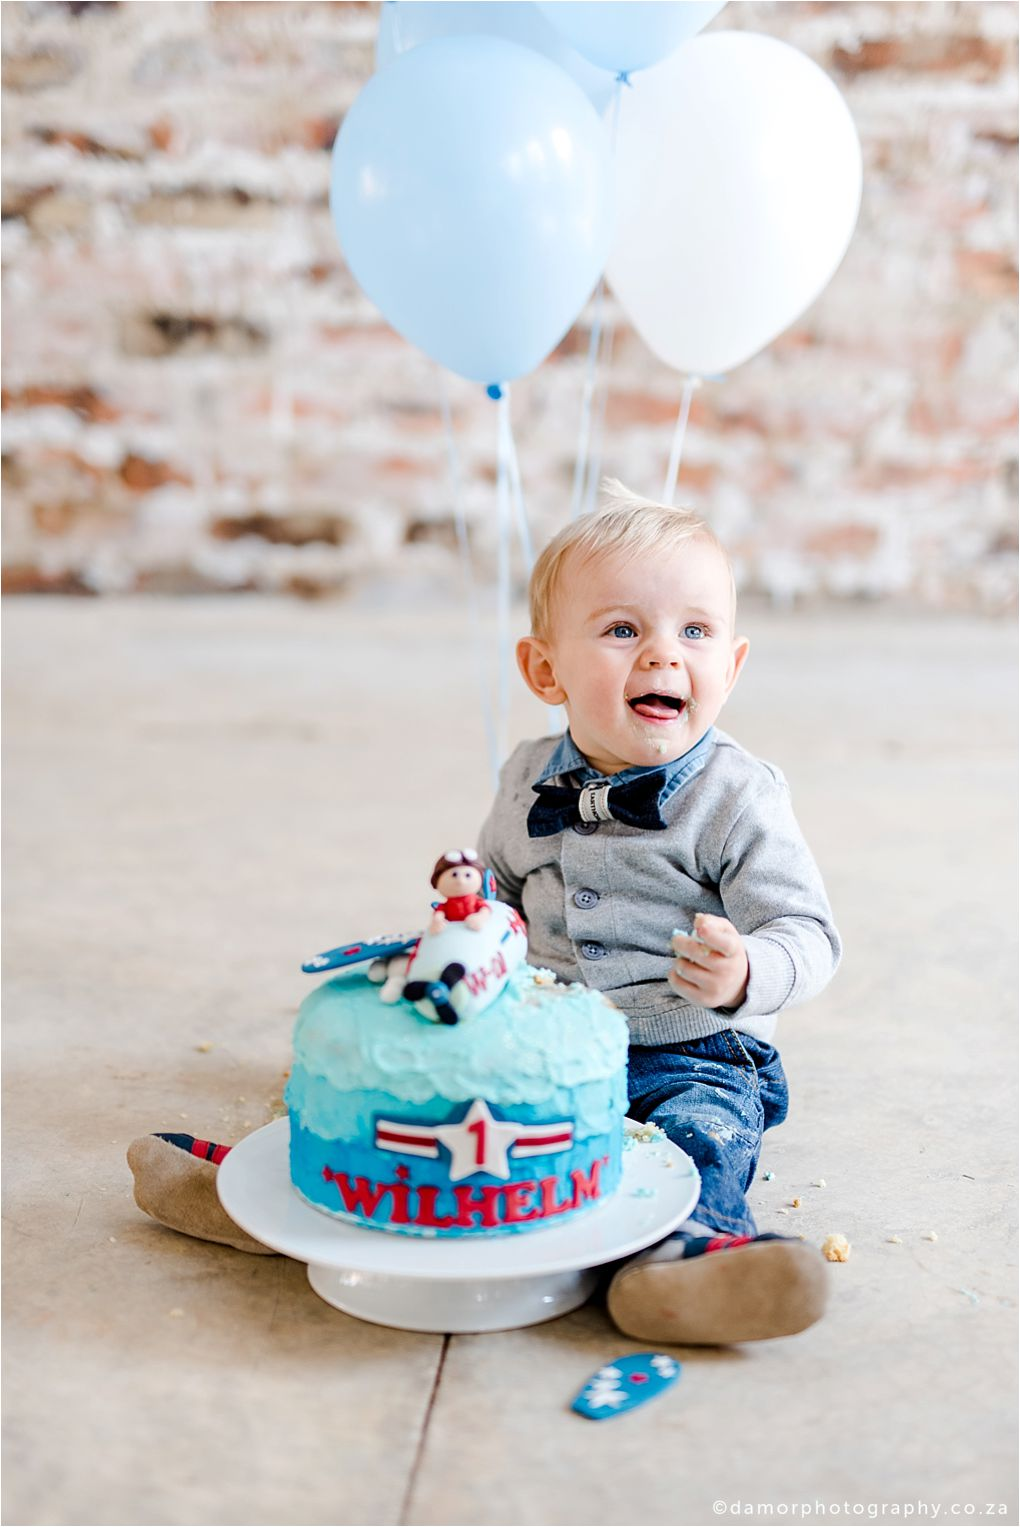 D'amor Photography Cake Smash Shoot One Year Old Boy Birthday